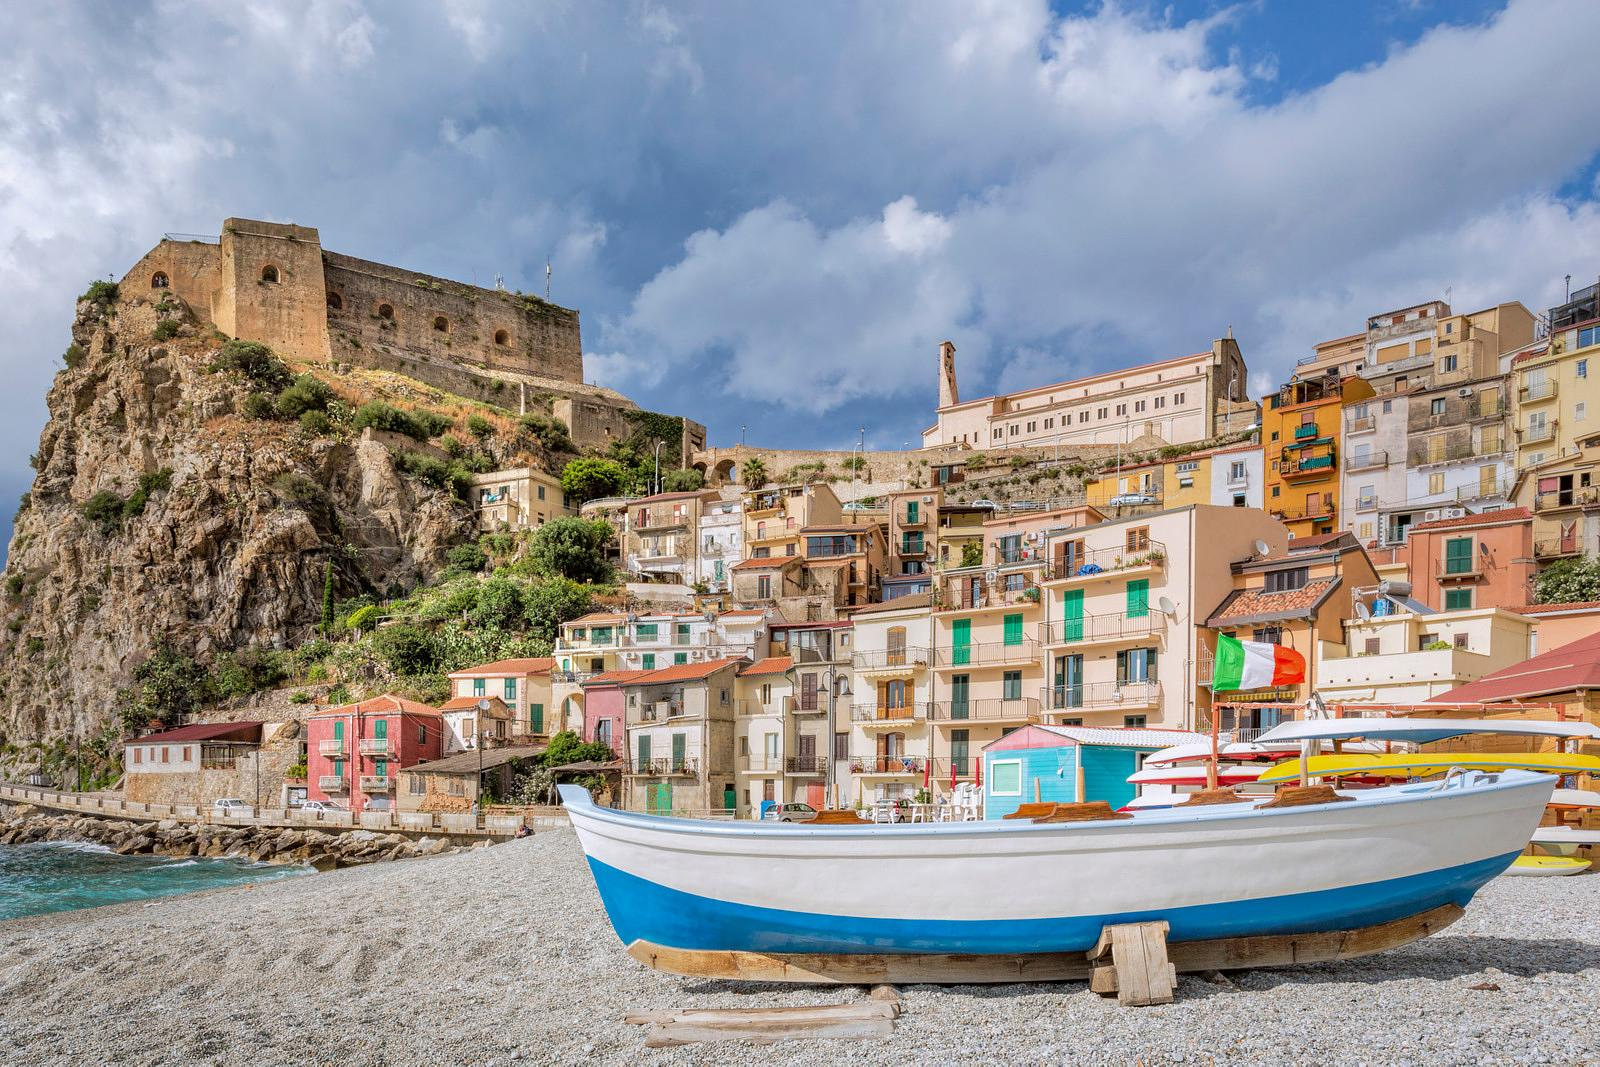 CALABRIA/BASILICATA: THE ALTERNATIVE ITALY, ​9 - 20 APRIL, 2021